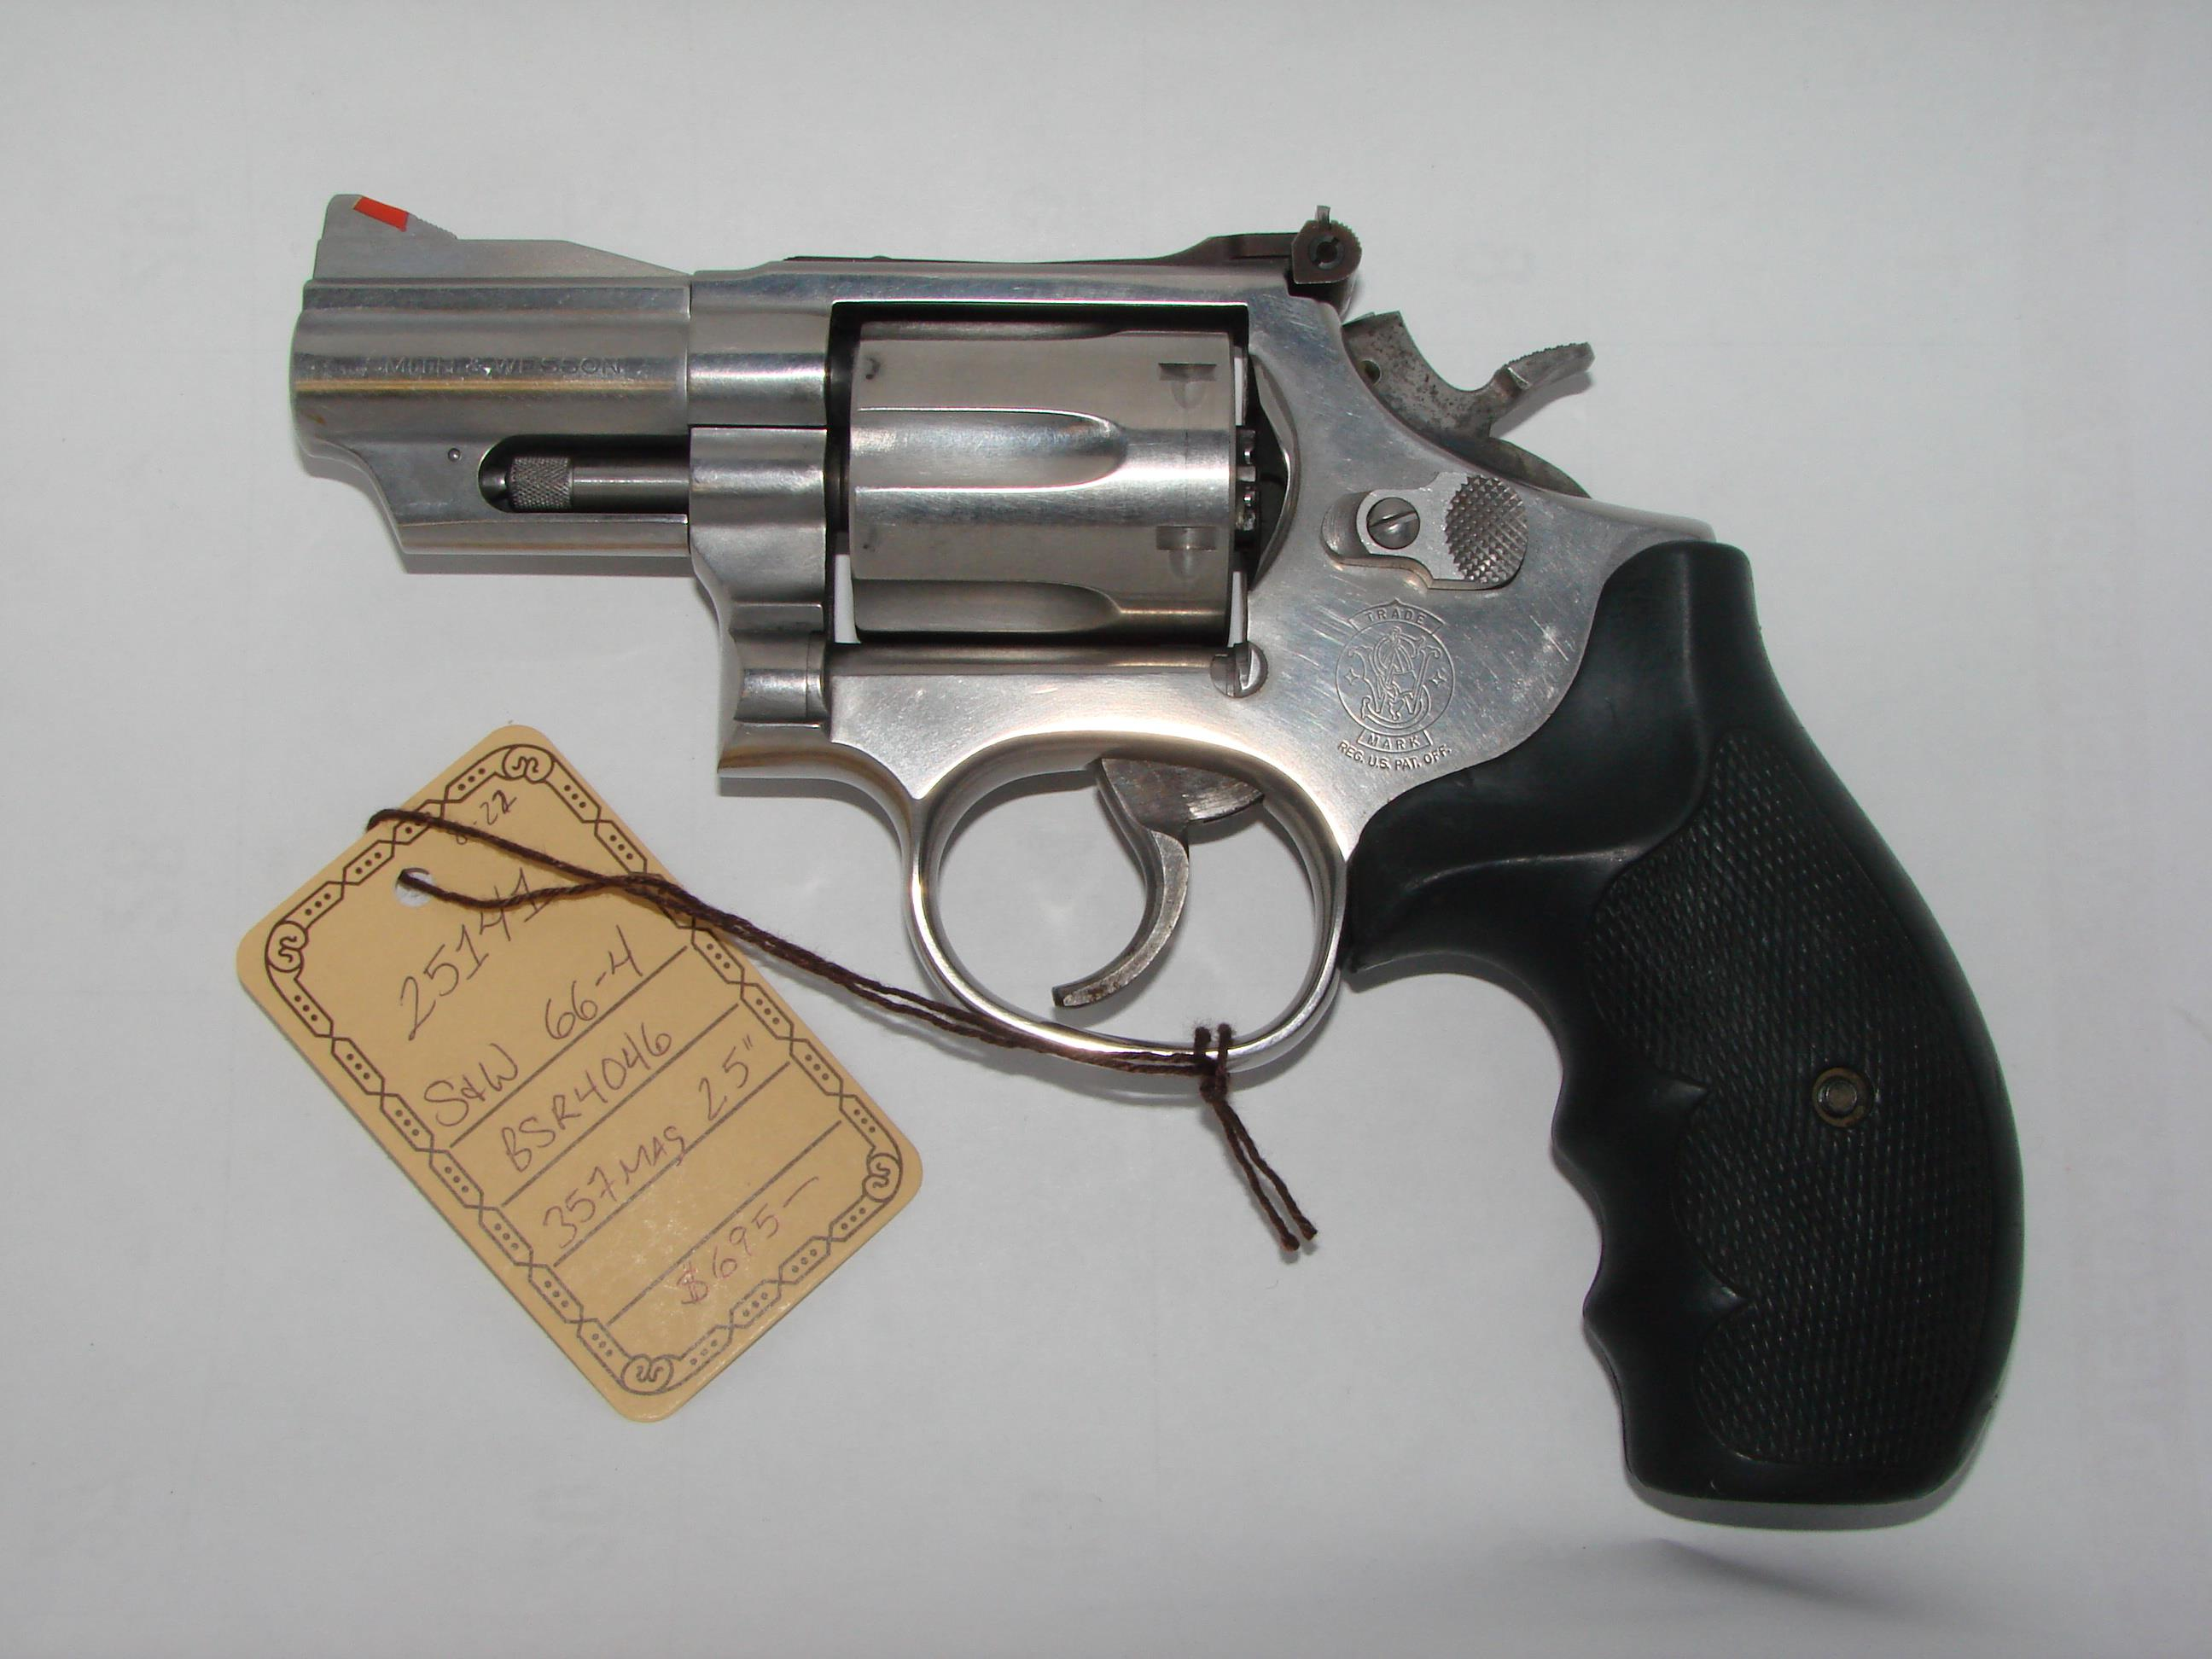 Smith & Wesson 66-4  Guns > Pistols > Smith & Wesson Revolvers > Full Frame Revolver